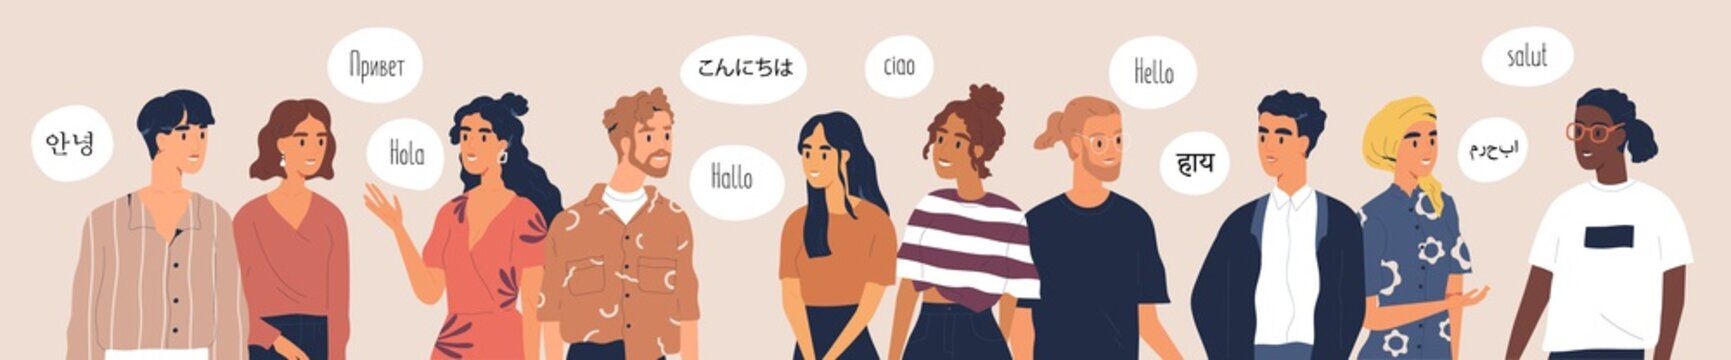 Multilingual greeting flat vector illustration. Hello in different languages. Diverse cultures, international communication concept. Native speakers, friendly men and women cartoon characters.